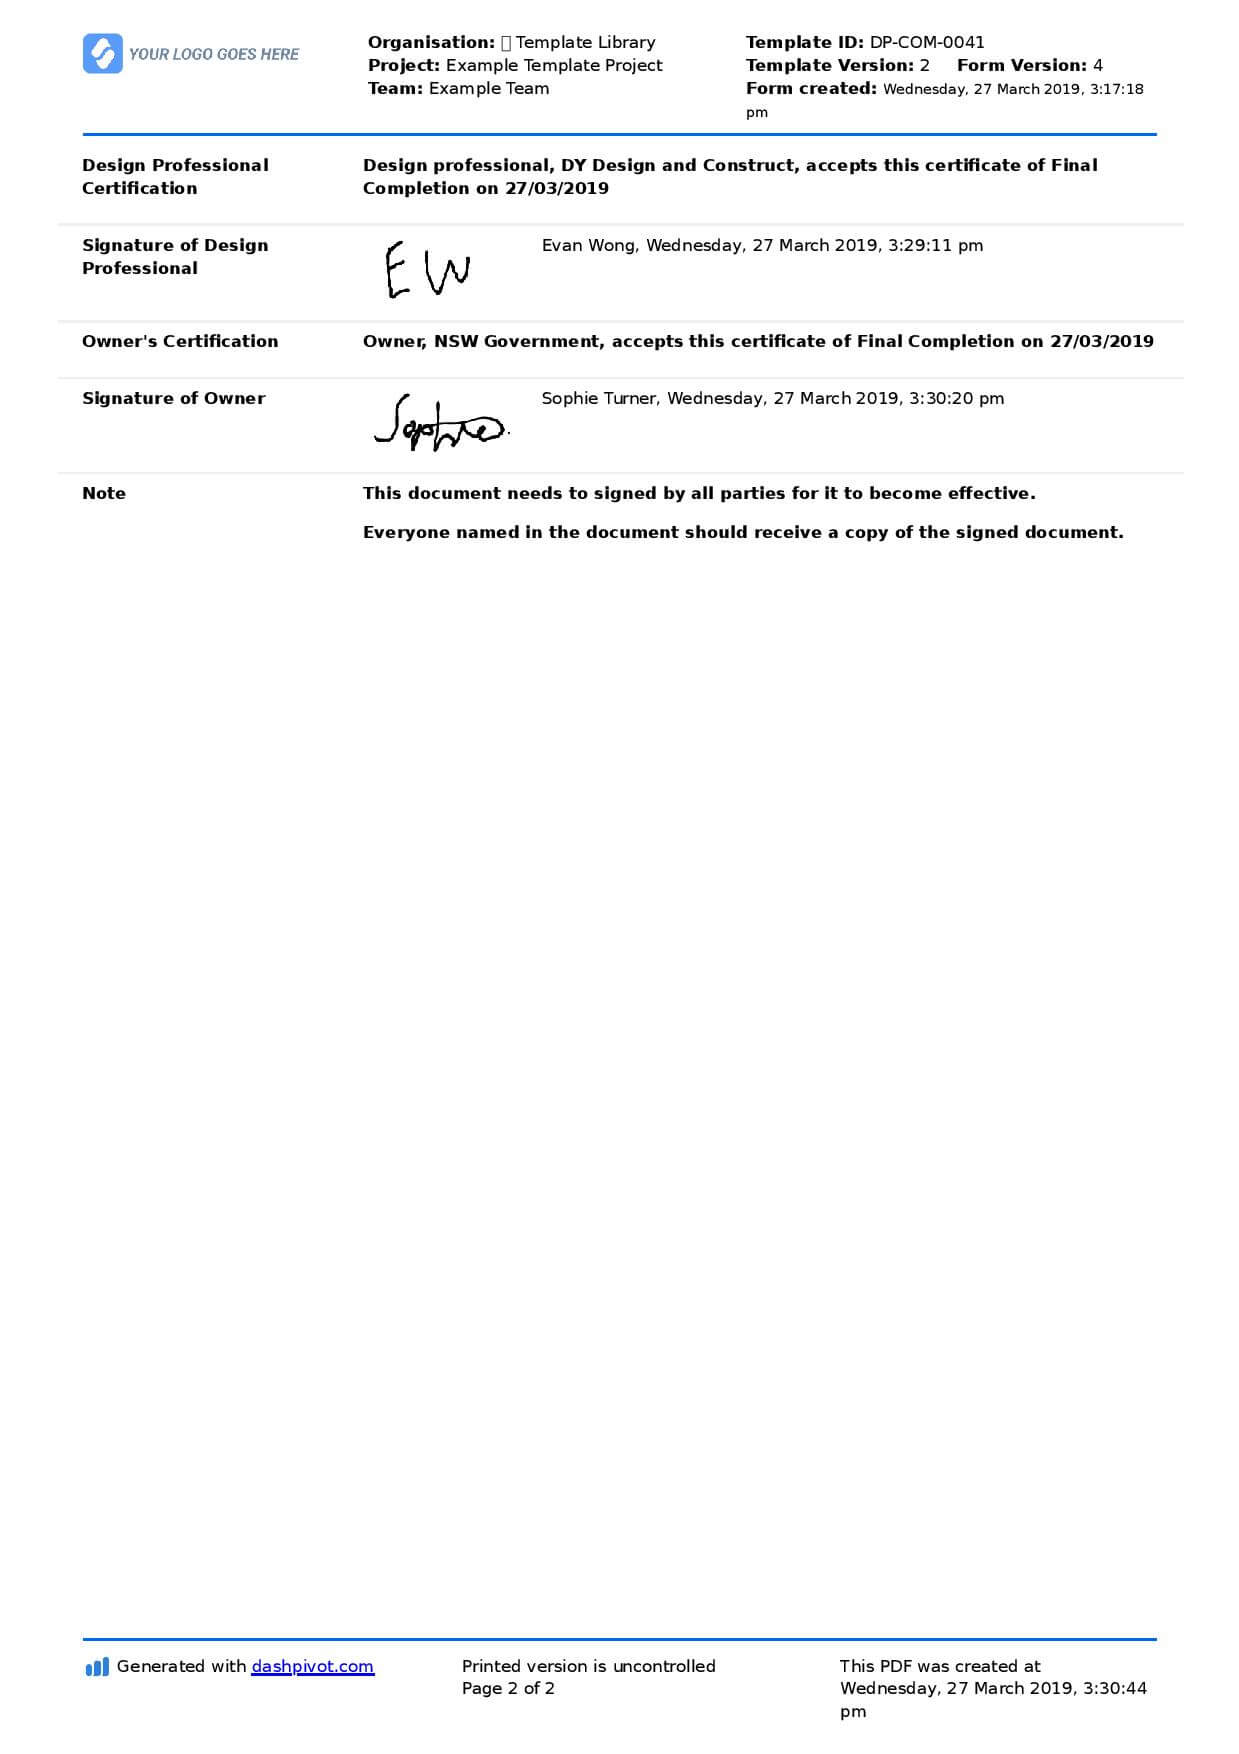 Letter Of Completion Of Work Sample (Use Or Copy For Yourself) Throughout Practical Completion Certificate Template Uk